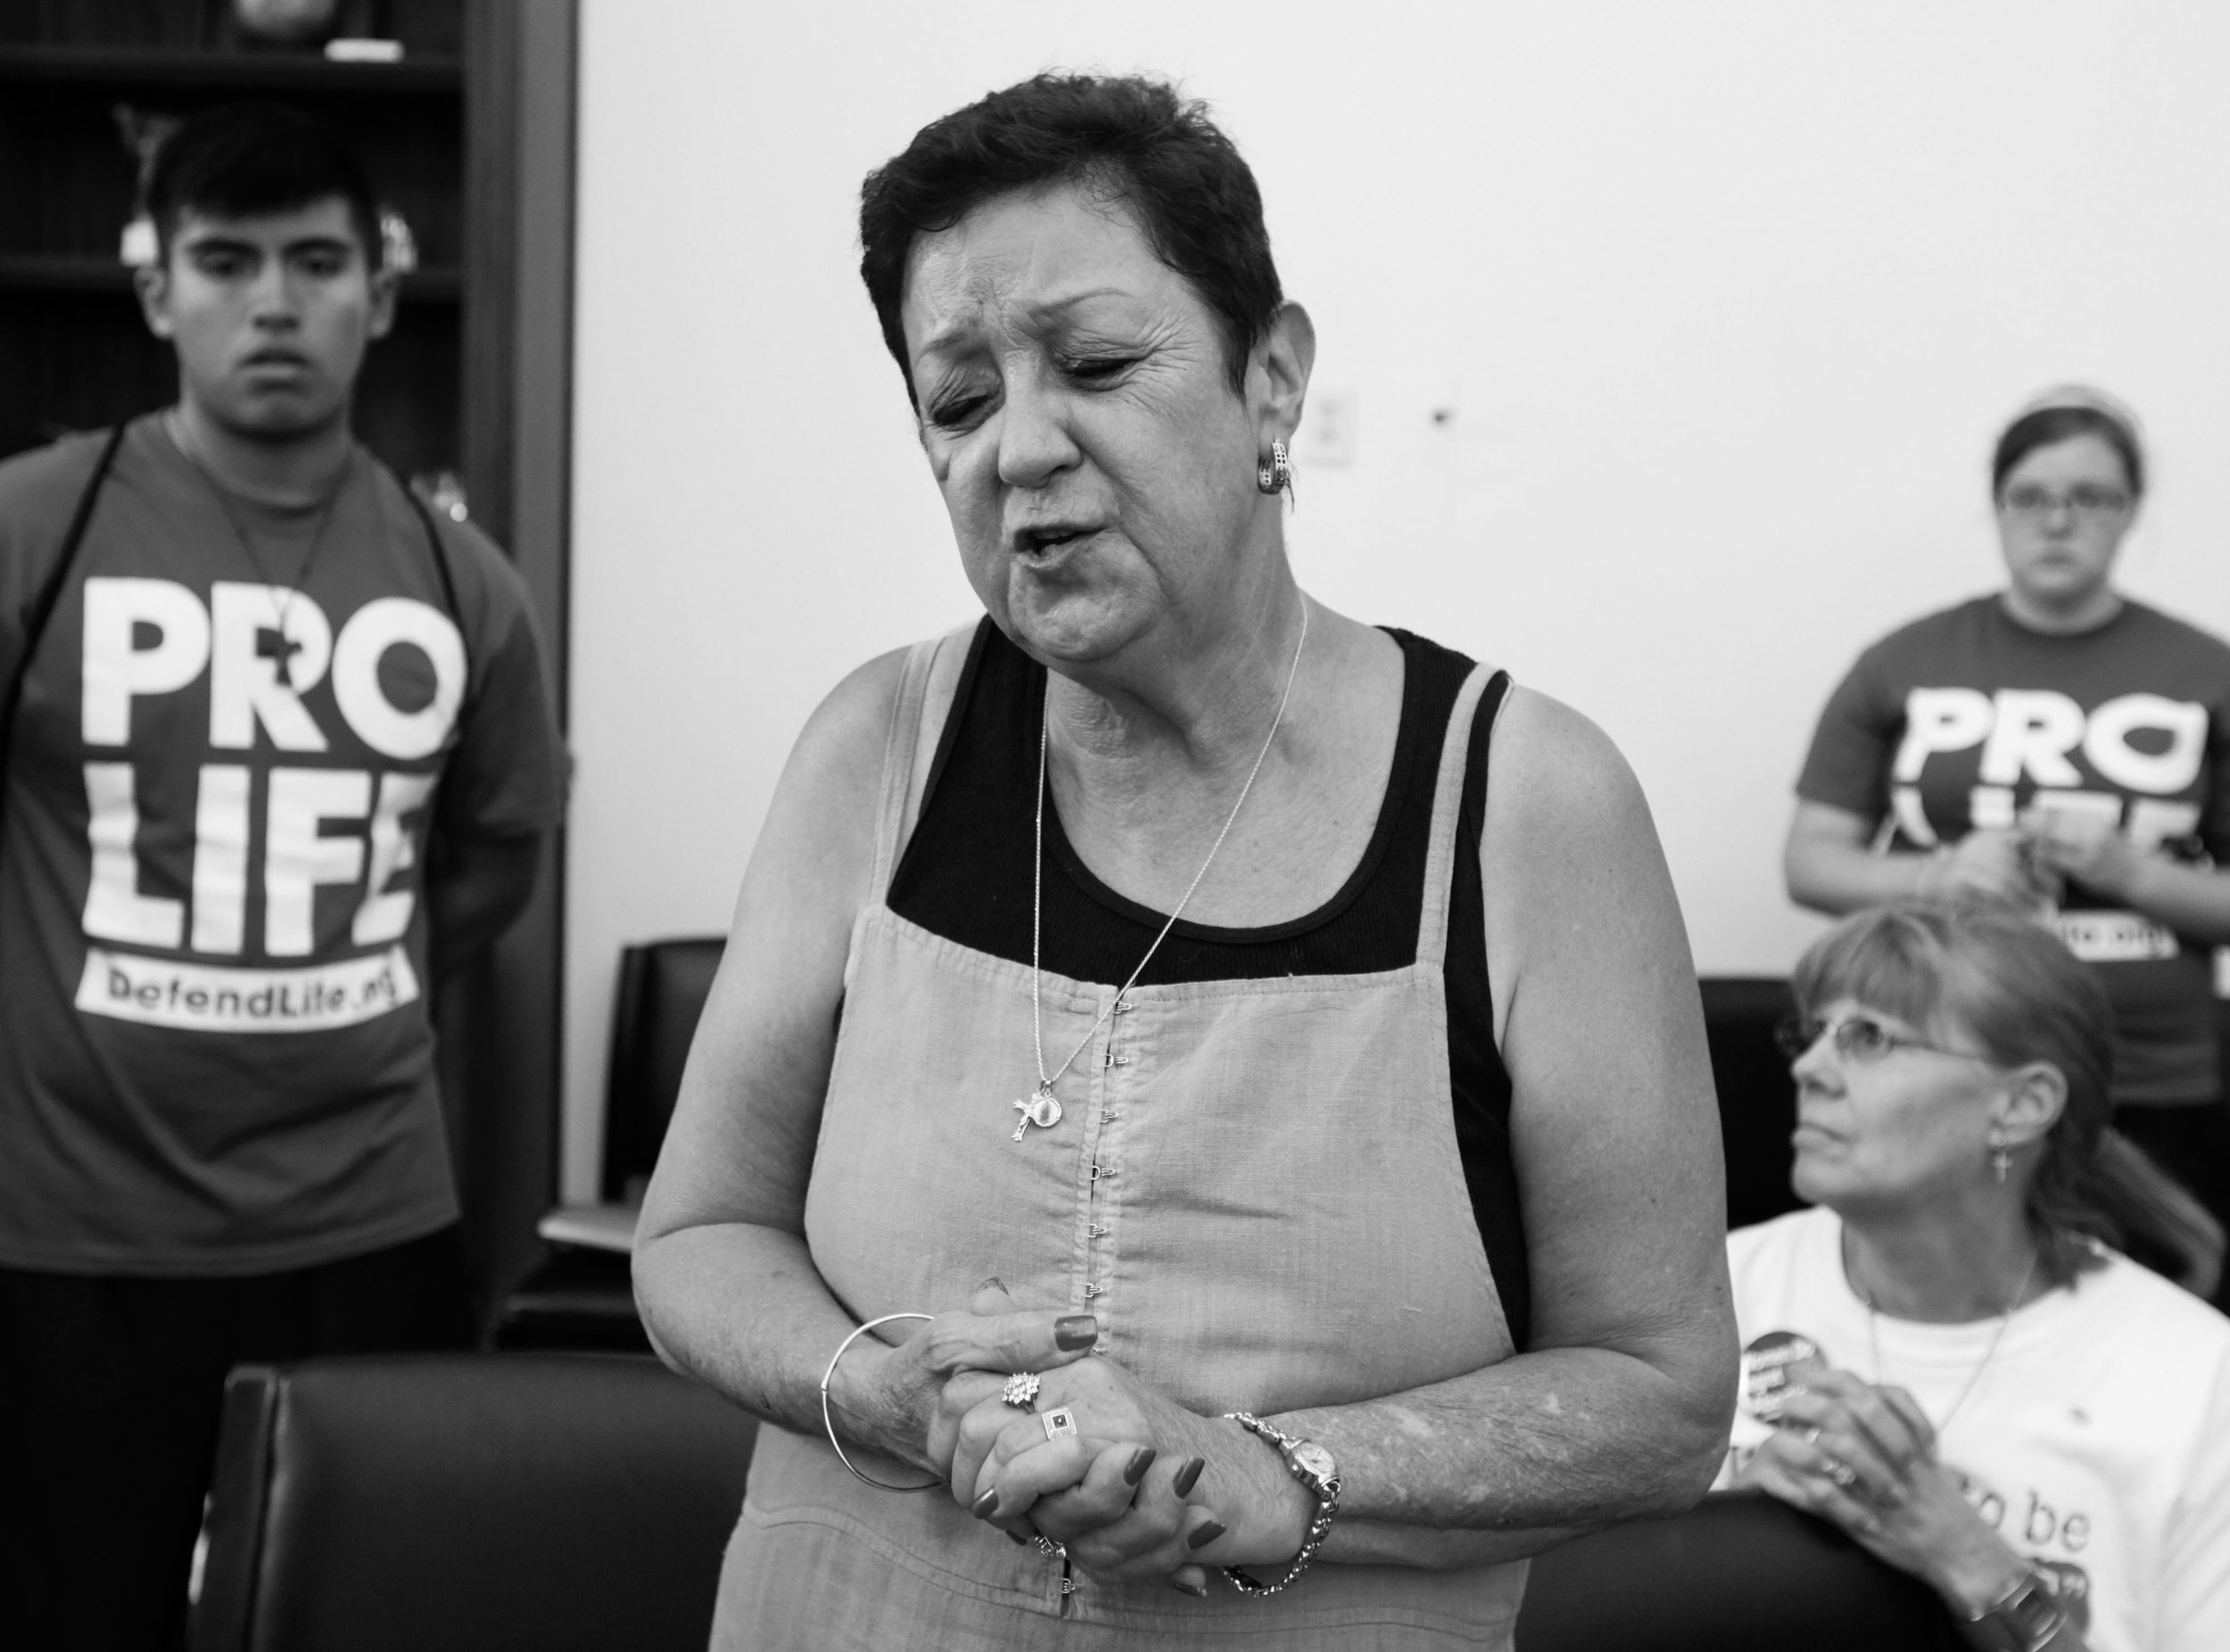 Norma speaks up as she joins other anti-abortion demonstrators inside the office of House Speaker Nancy Pelosi in Washington on July 28, 2009.